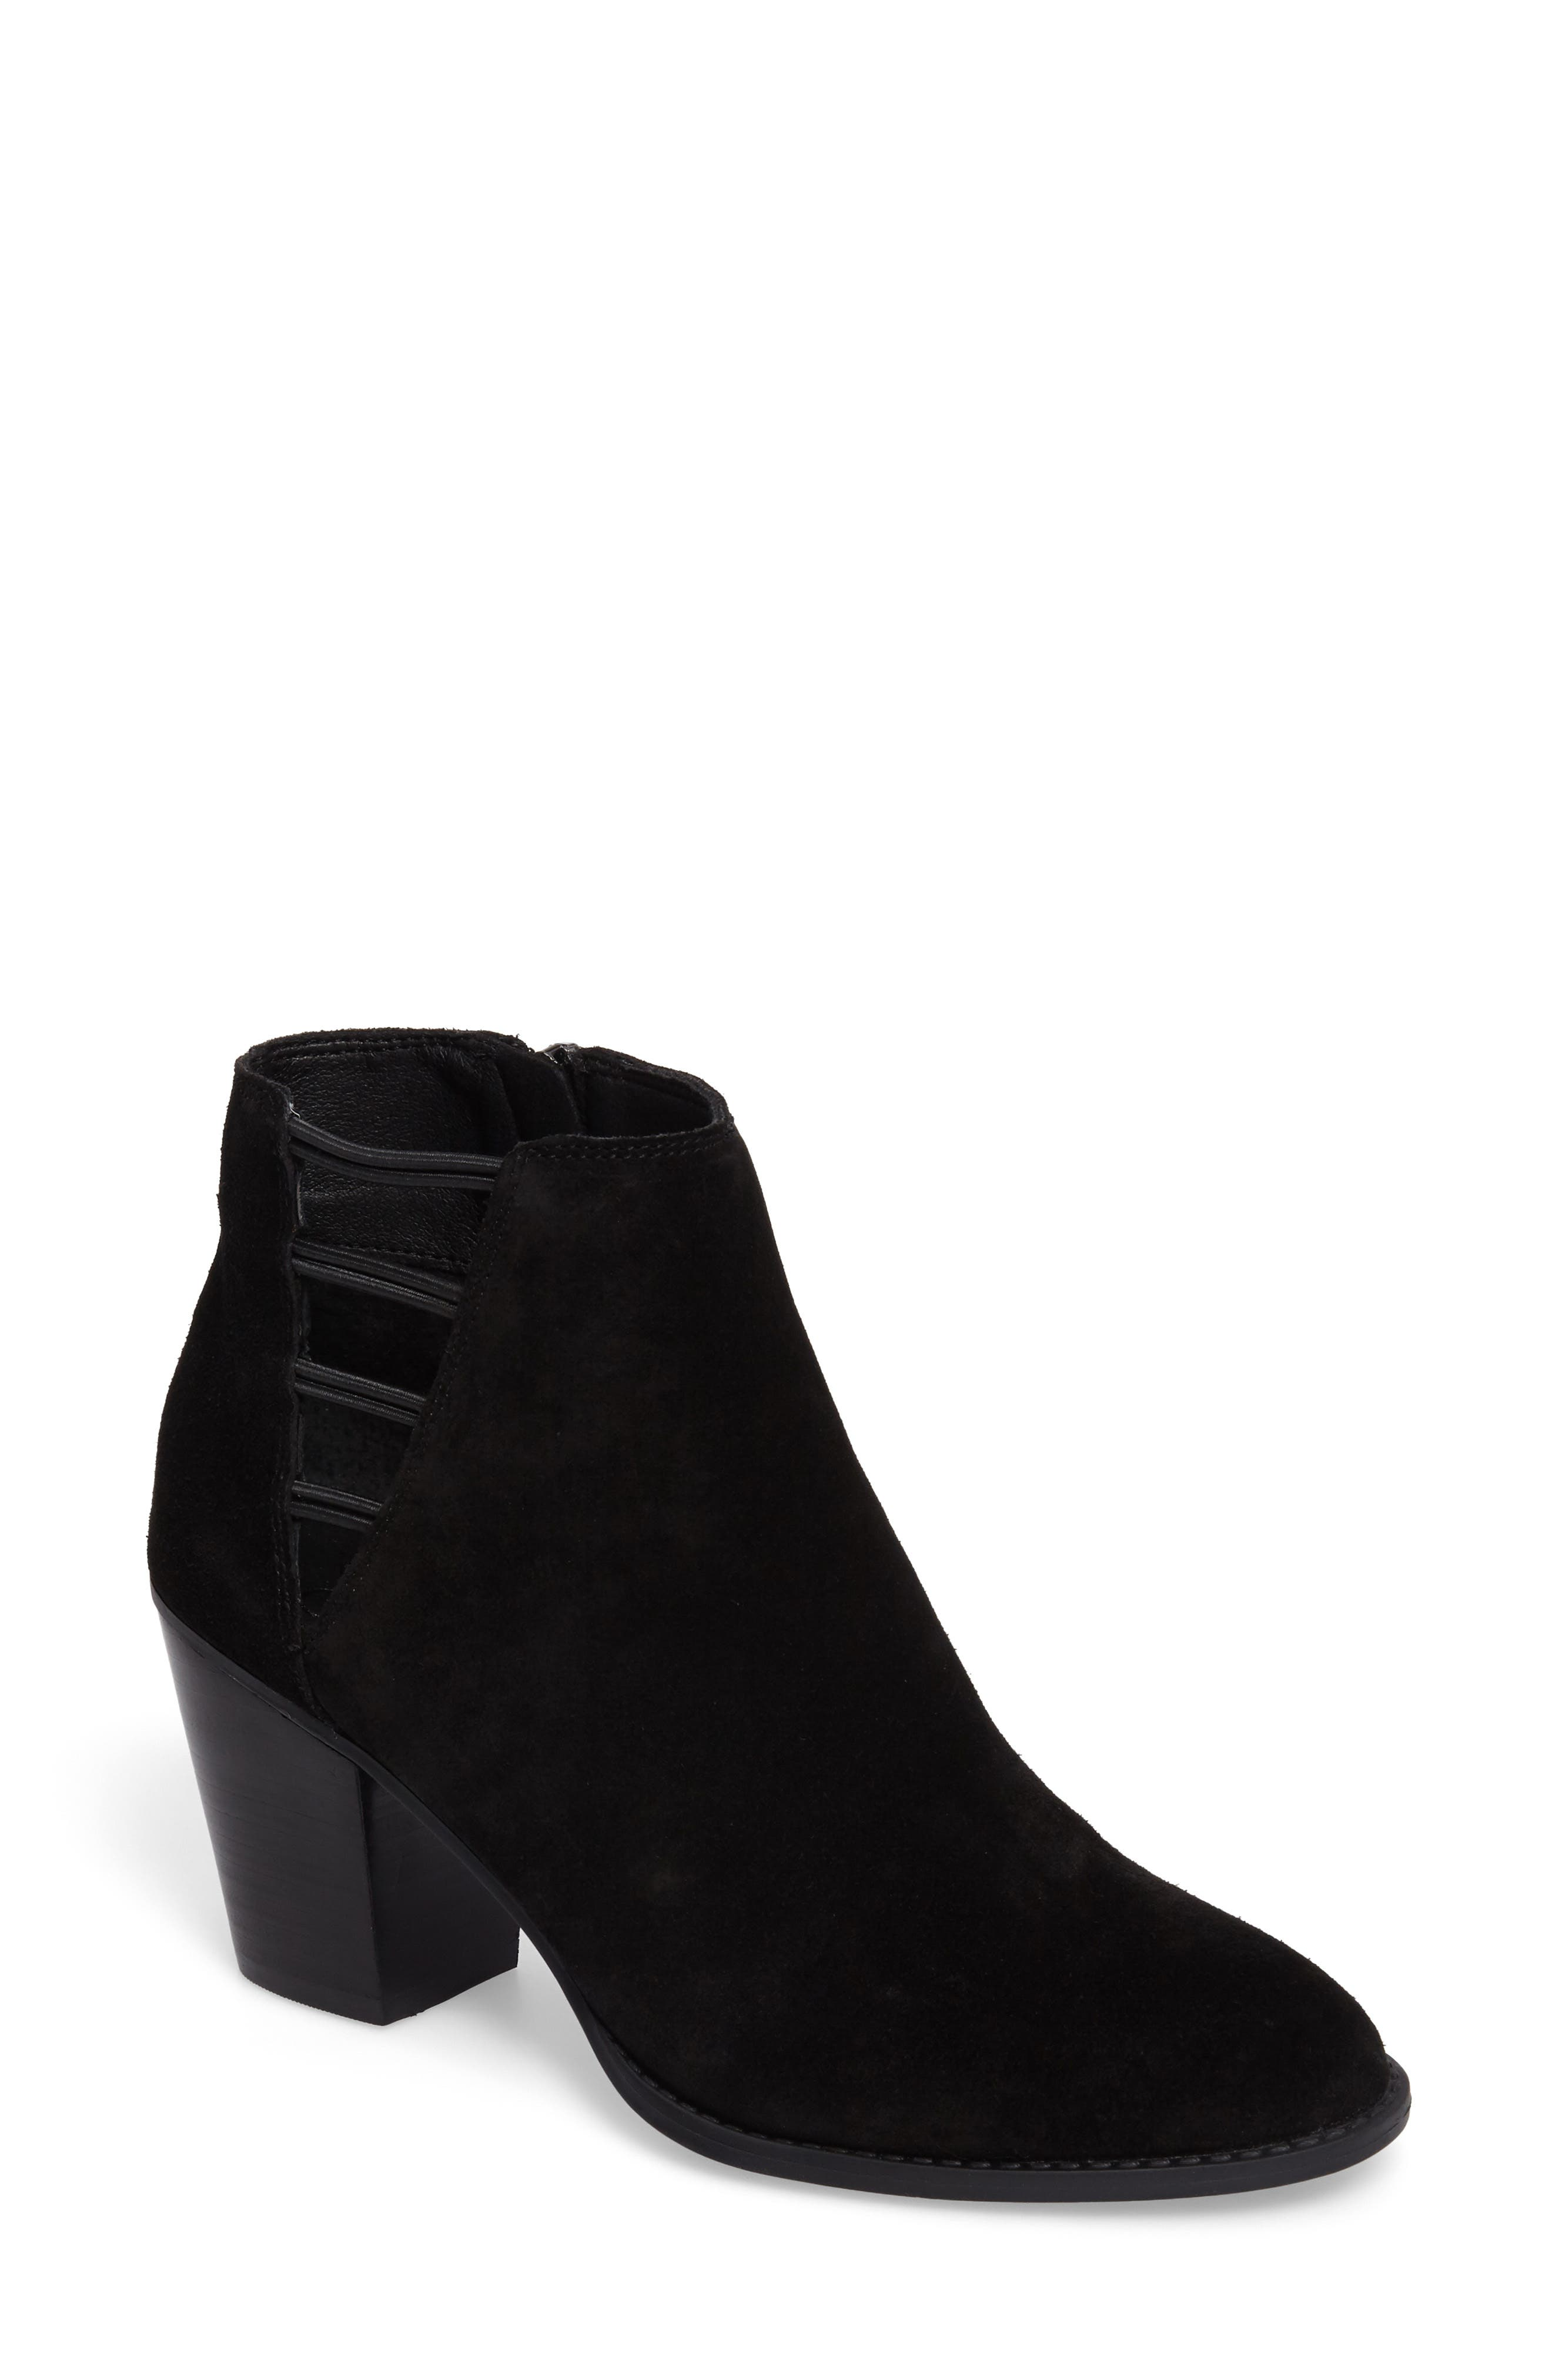 Yasma Bootie,                             Main thumbnail 1, color,                             Black Suede